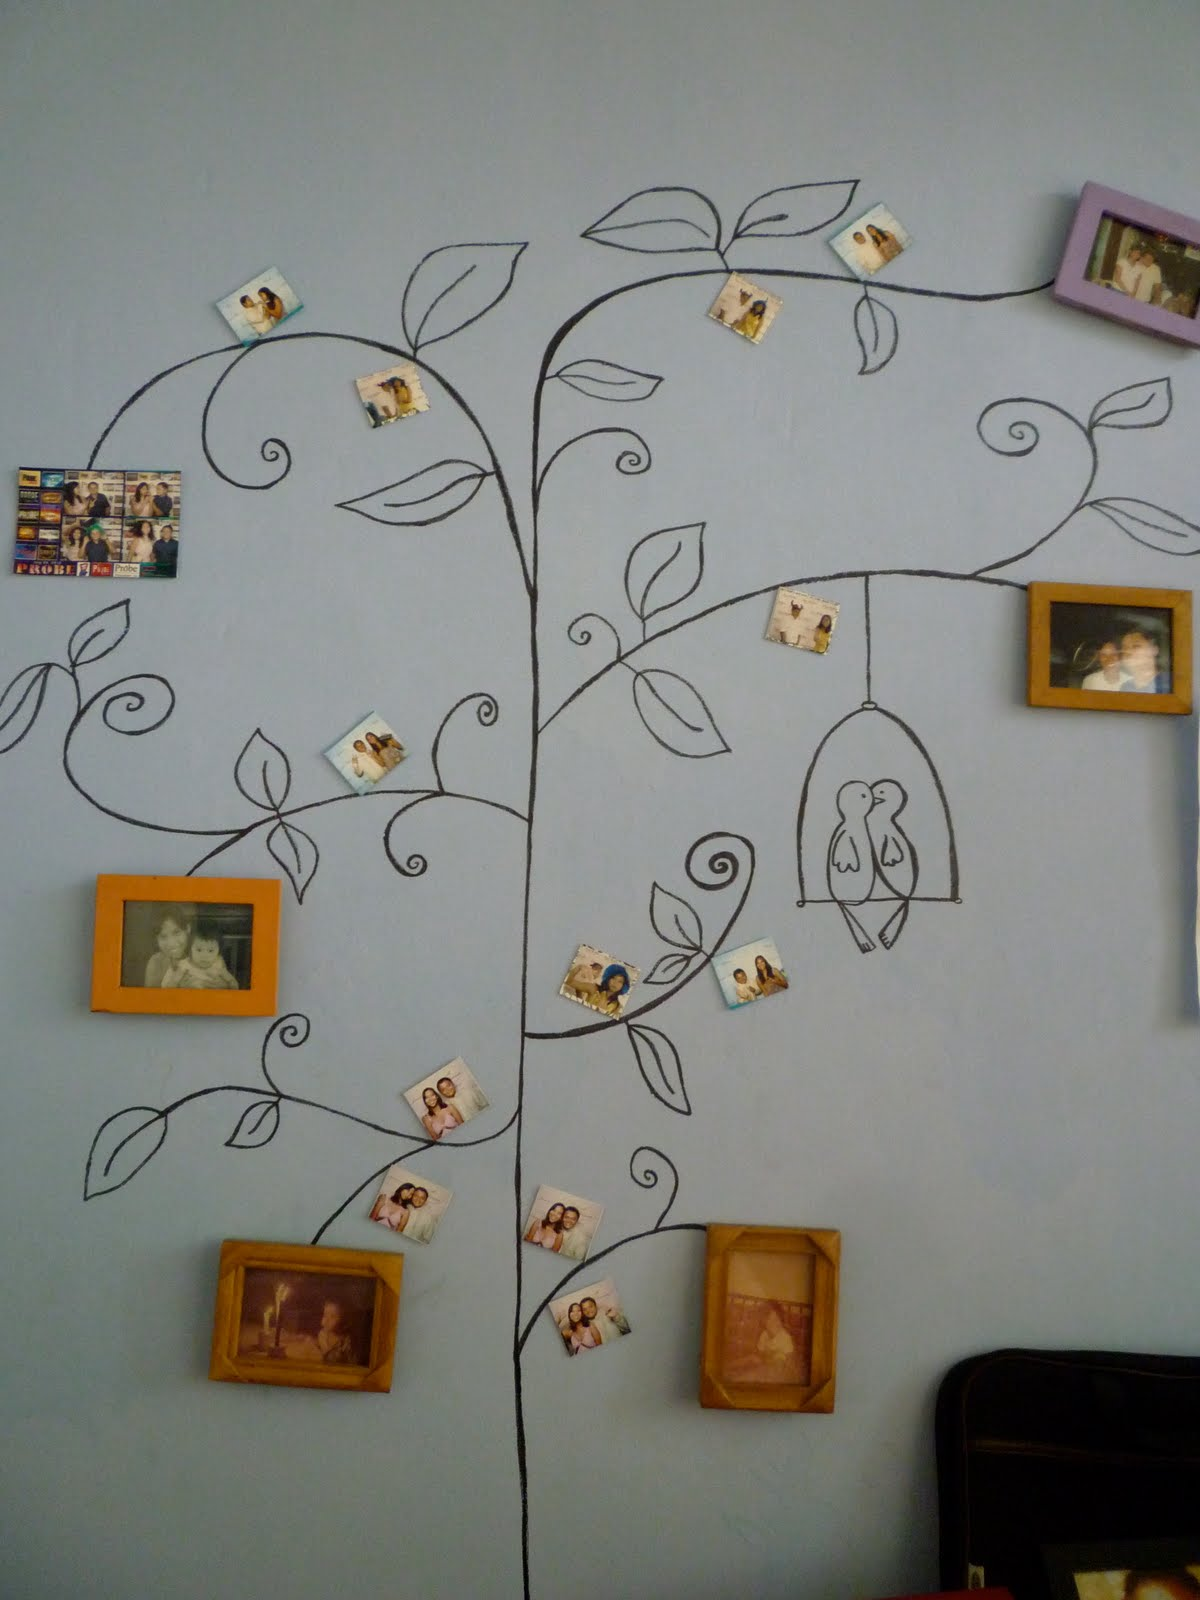 Bedroom Drawing: The Adventures Of Agay And Spanky: Drawing On Our Bedroom Wall